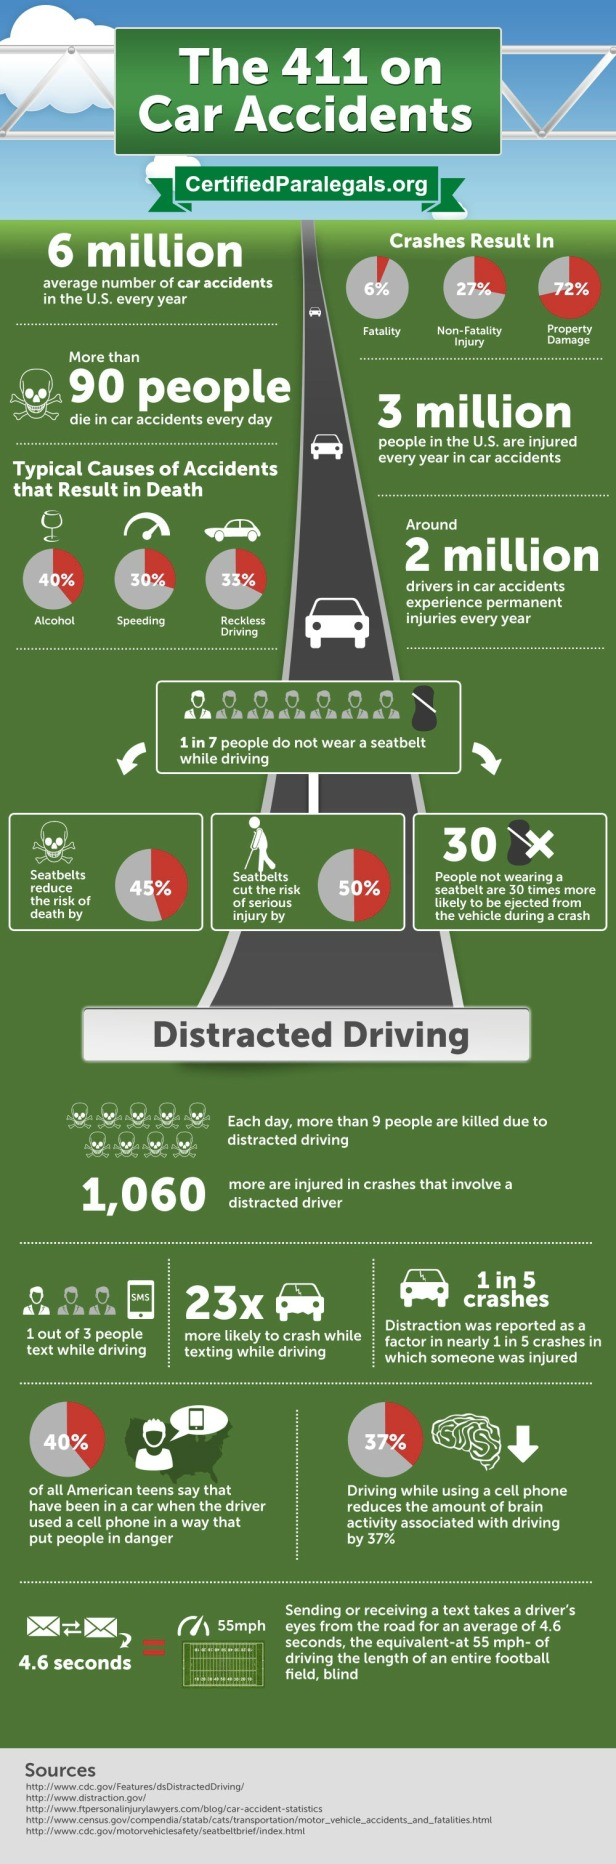 car-accidents-infographic.jpg